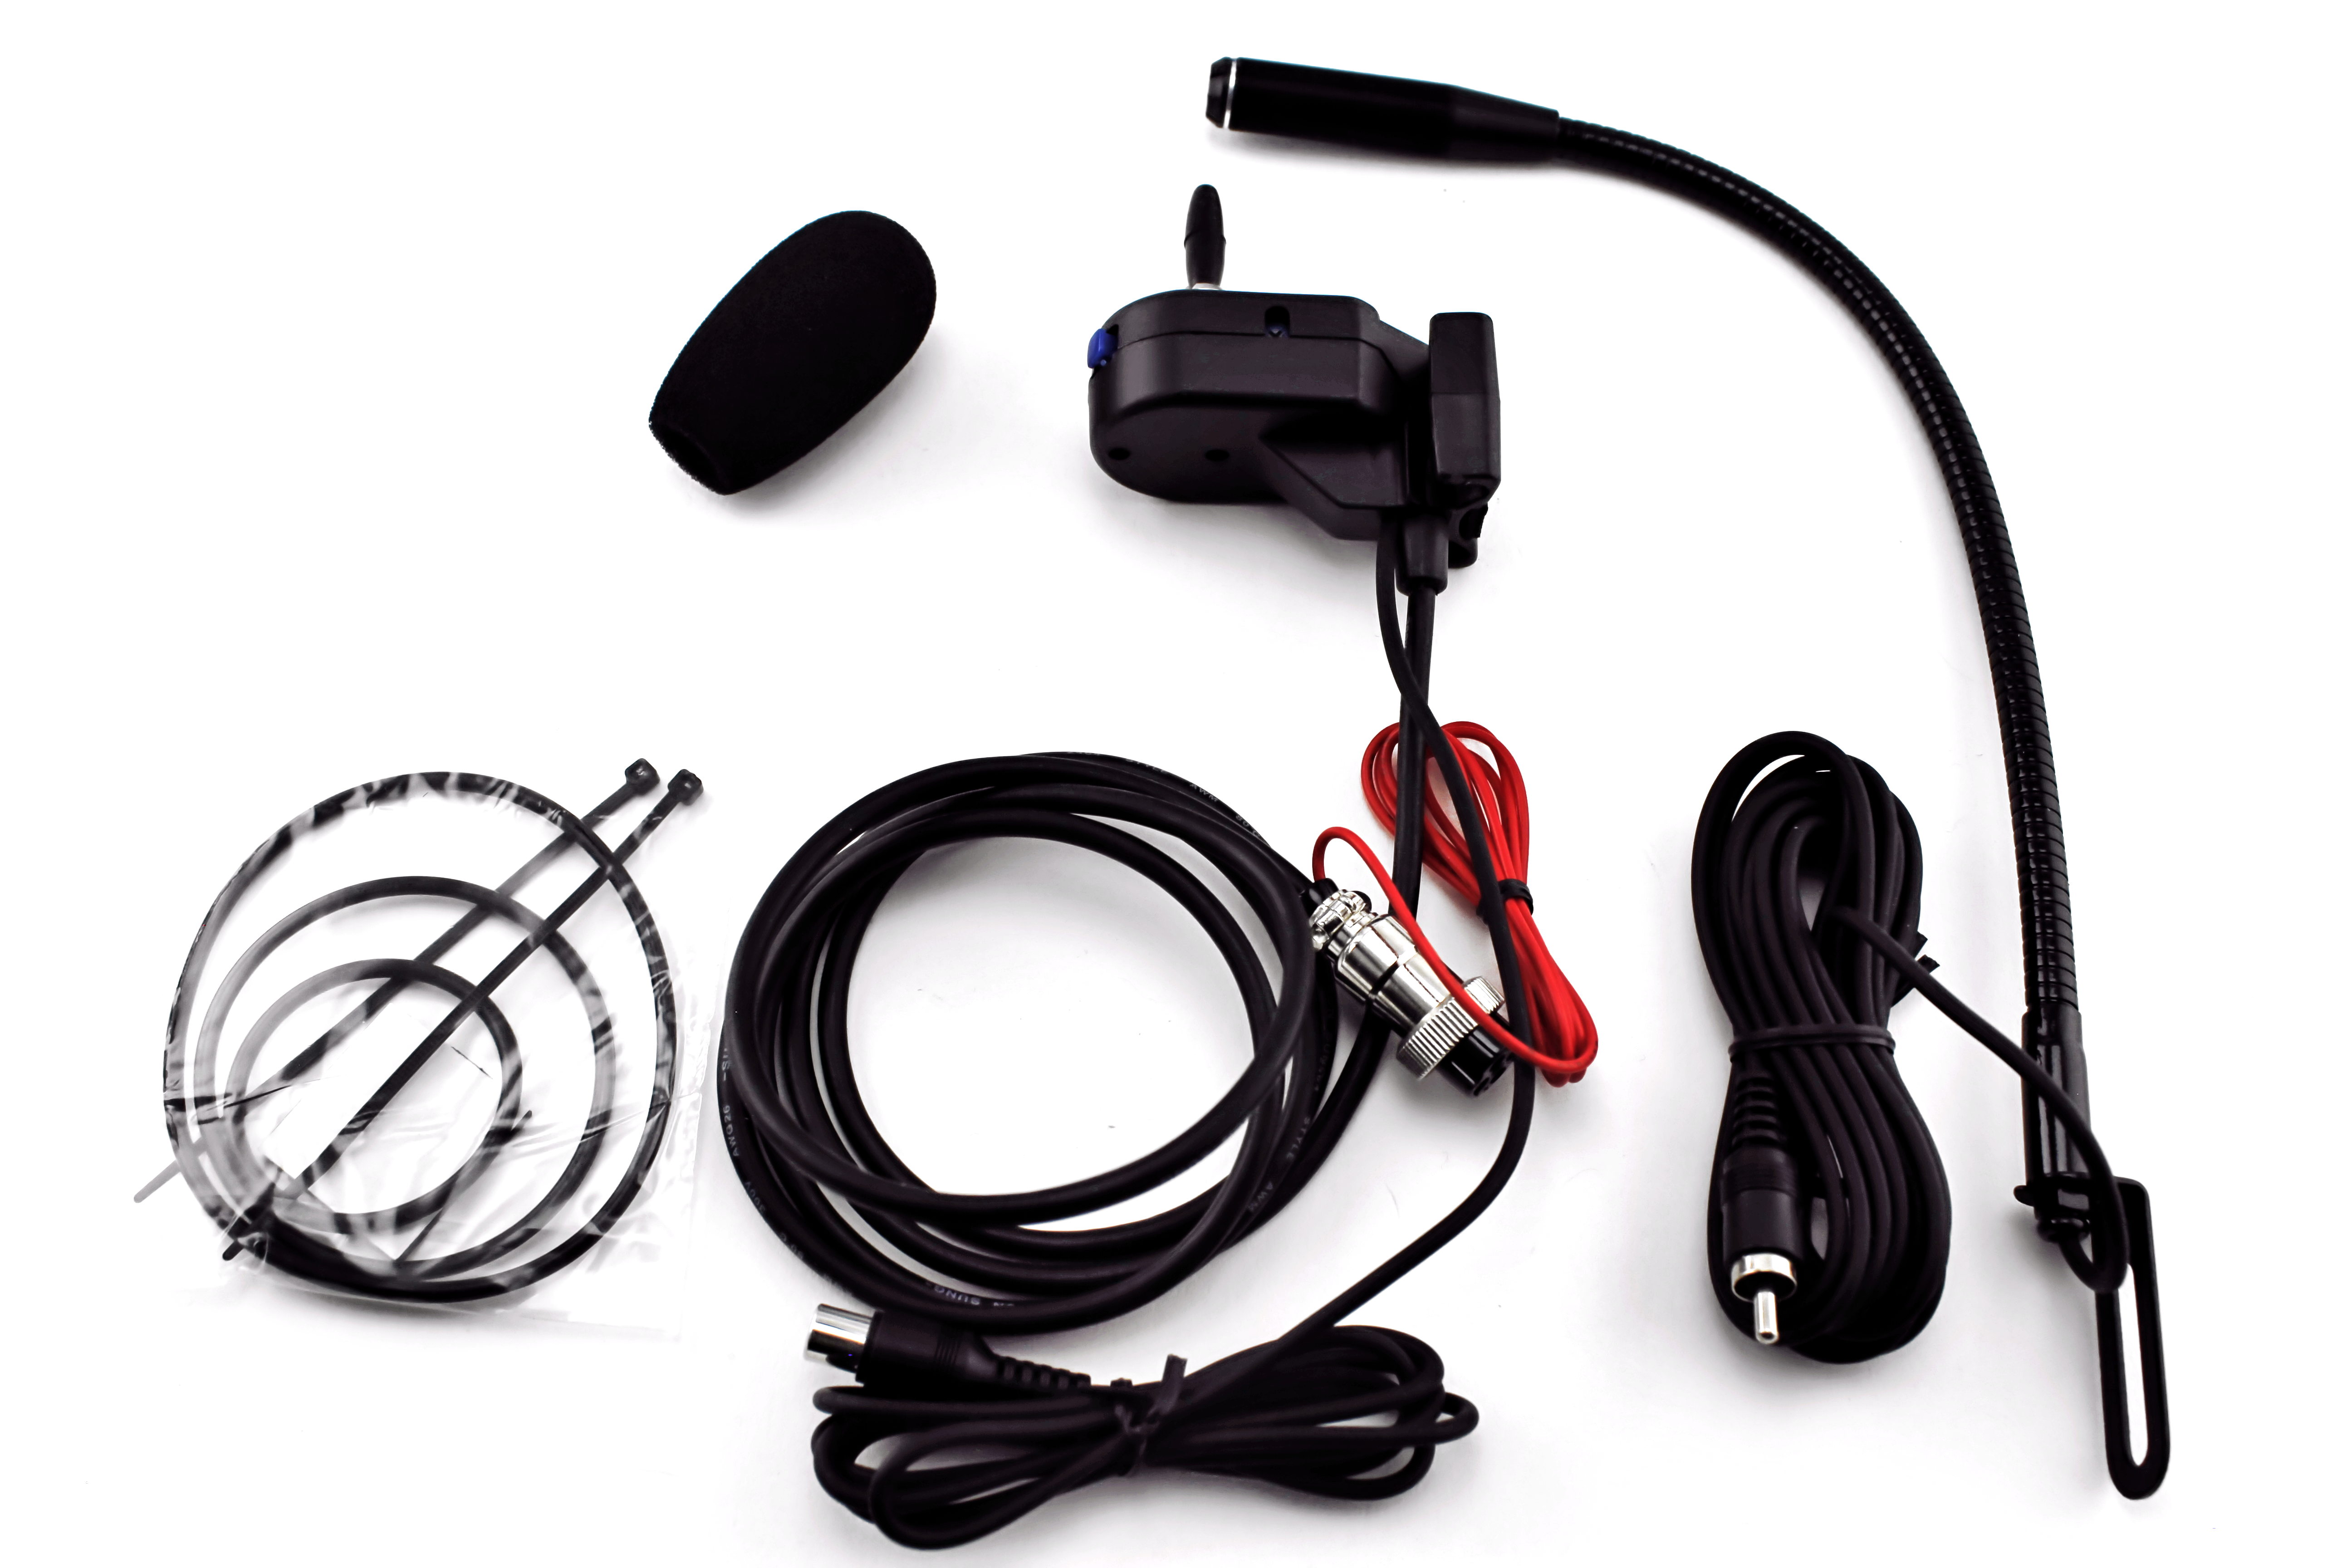 Toyocom MS-5 - Hands Free Remote Mount 4-Pin CB Microphone System